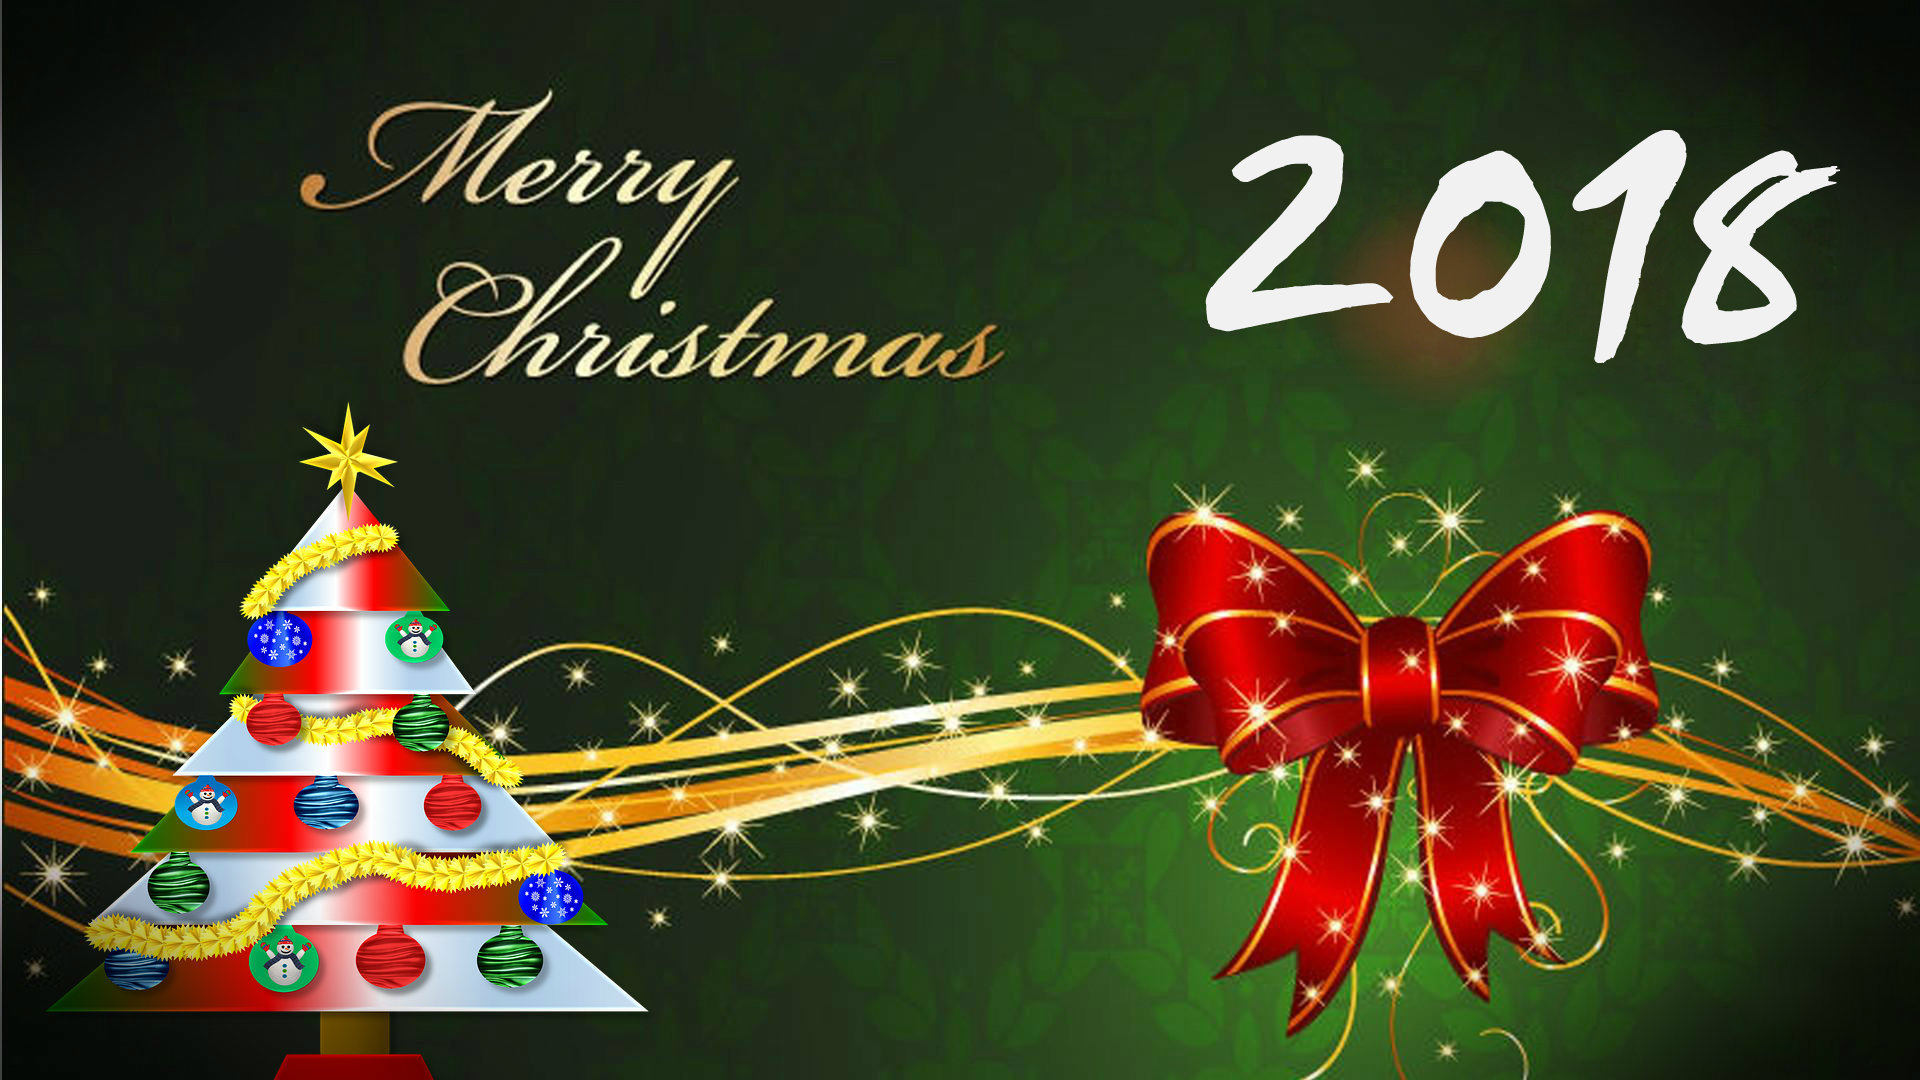 Merry Christmas 2018 Wishes Quotes Images Wallpapers